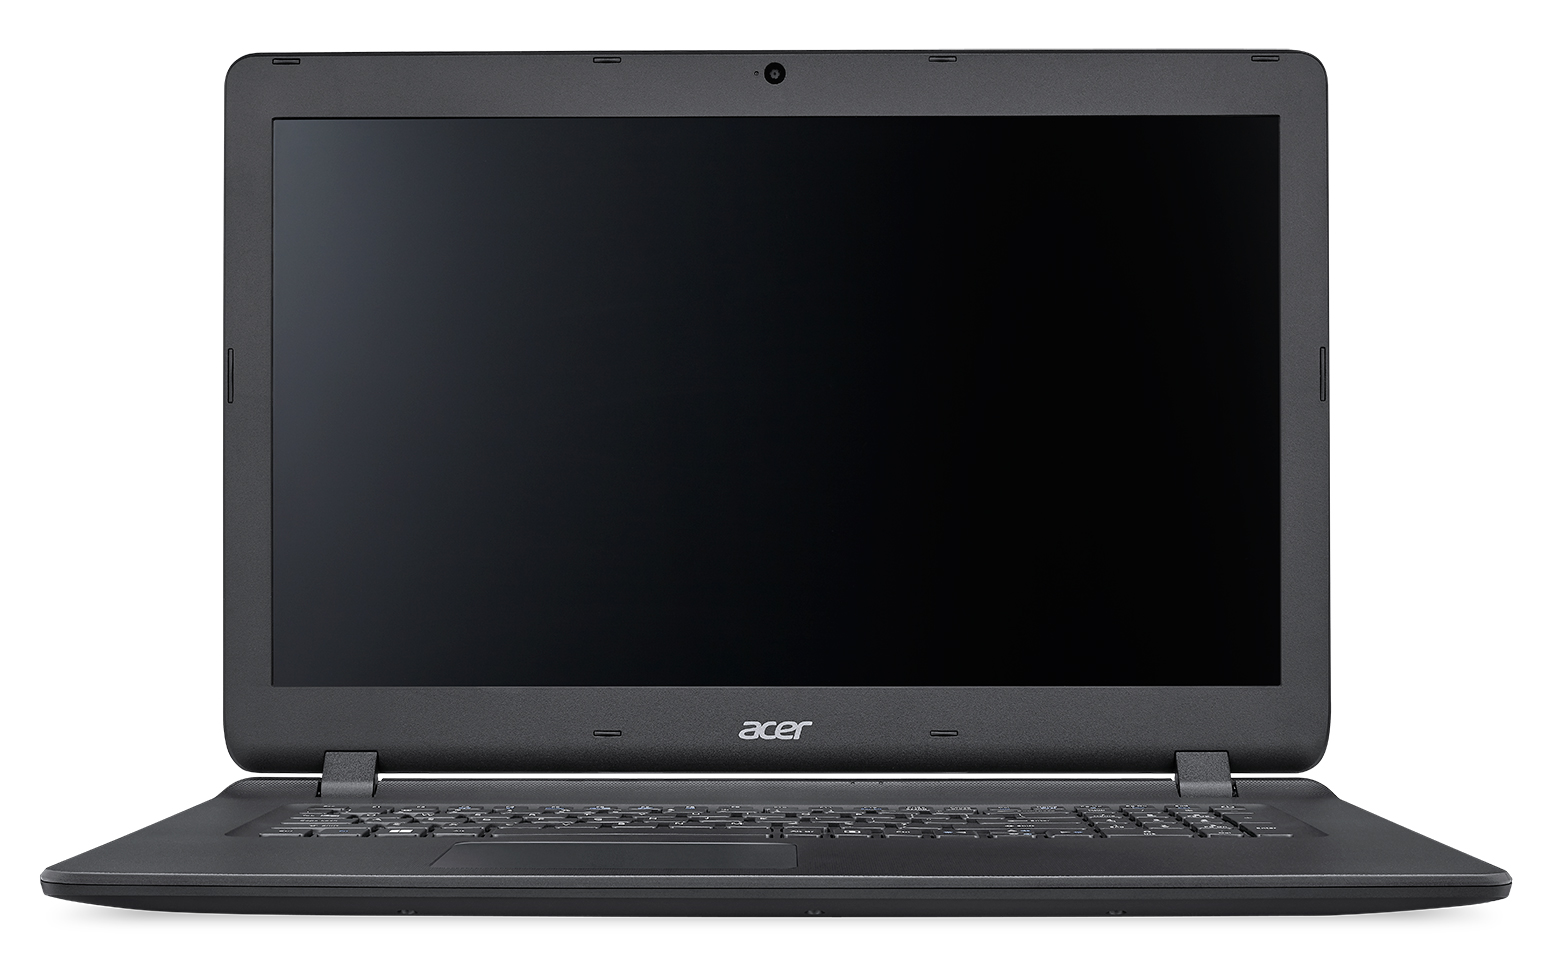 "Acer Aspire ES 17 (ES1-732-P378) Pentium N4200/4GB+N/A/256GB SSD+N/A/DVDRW/HD Graphics/17.3""HD+LED lesklý/BT/W10 Home/Black"